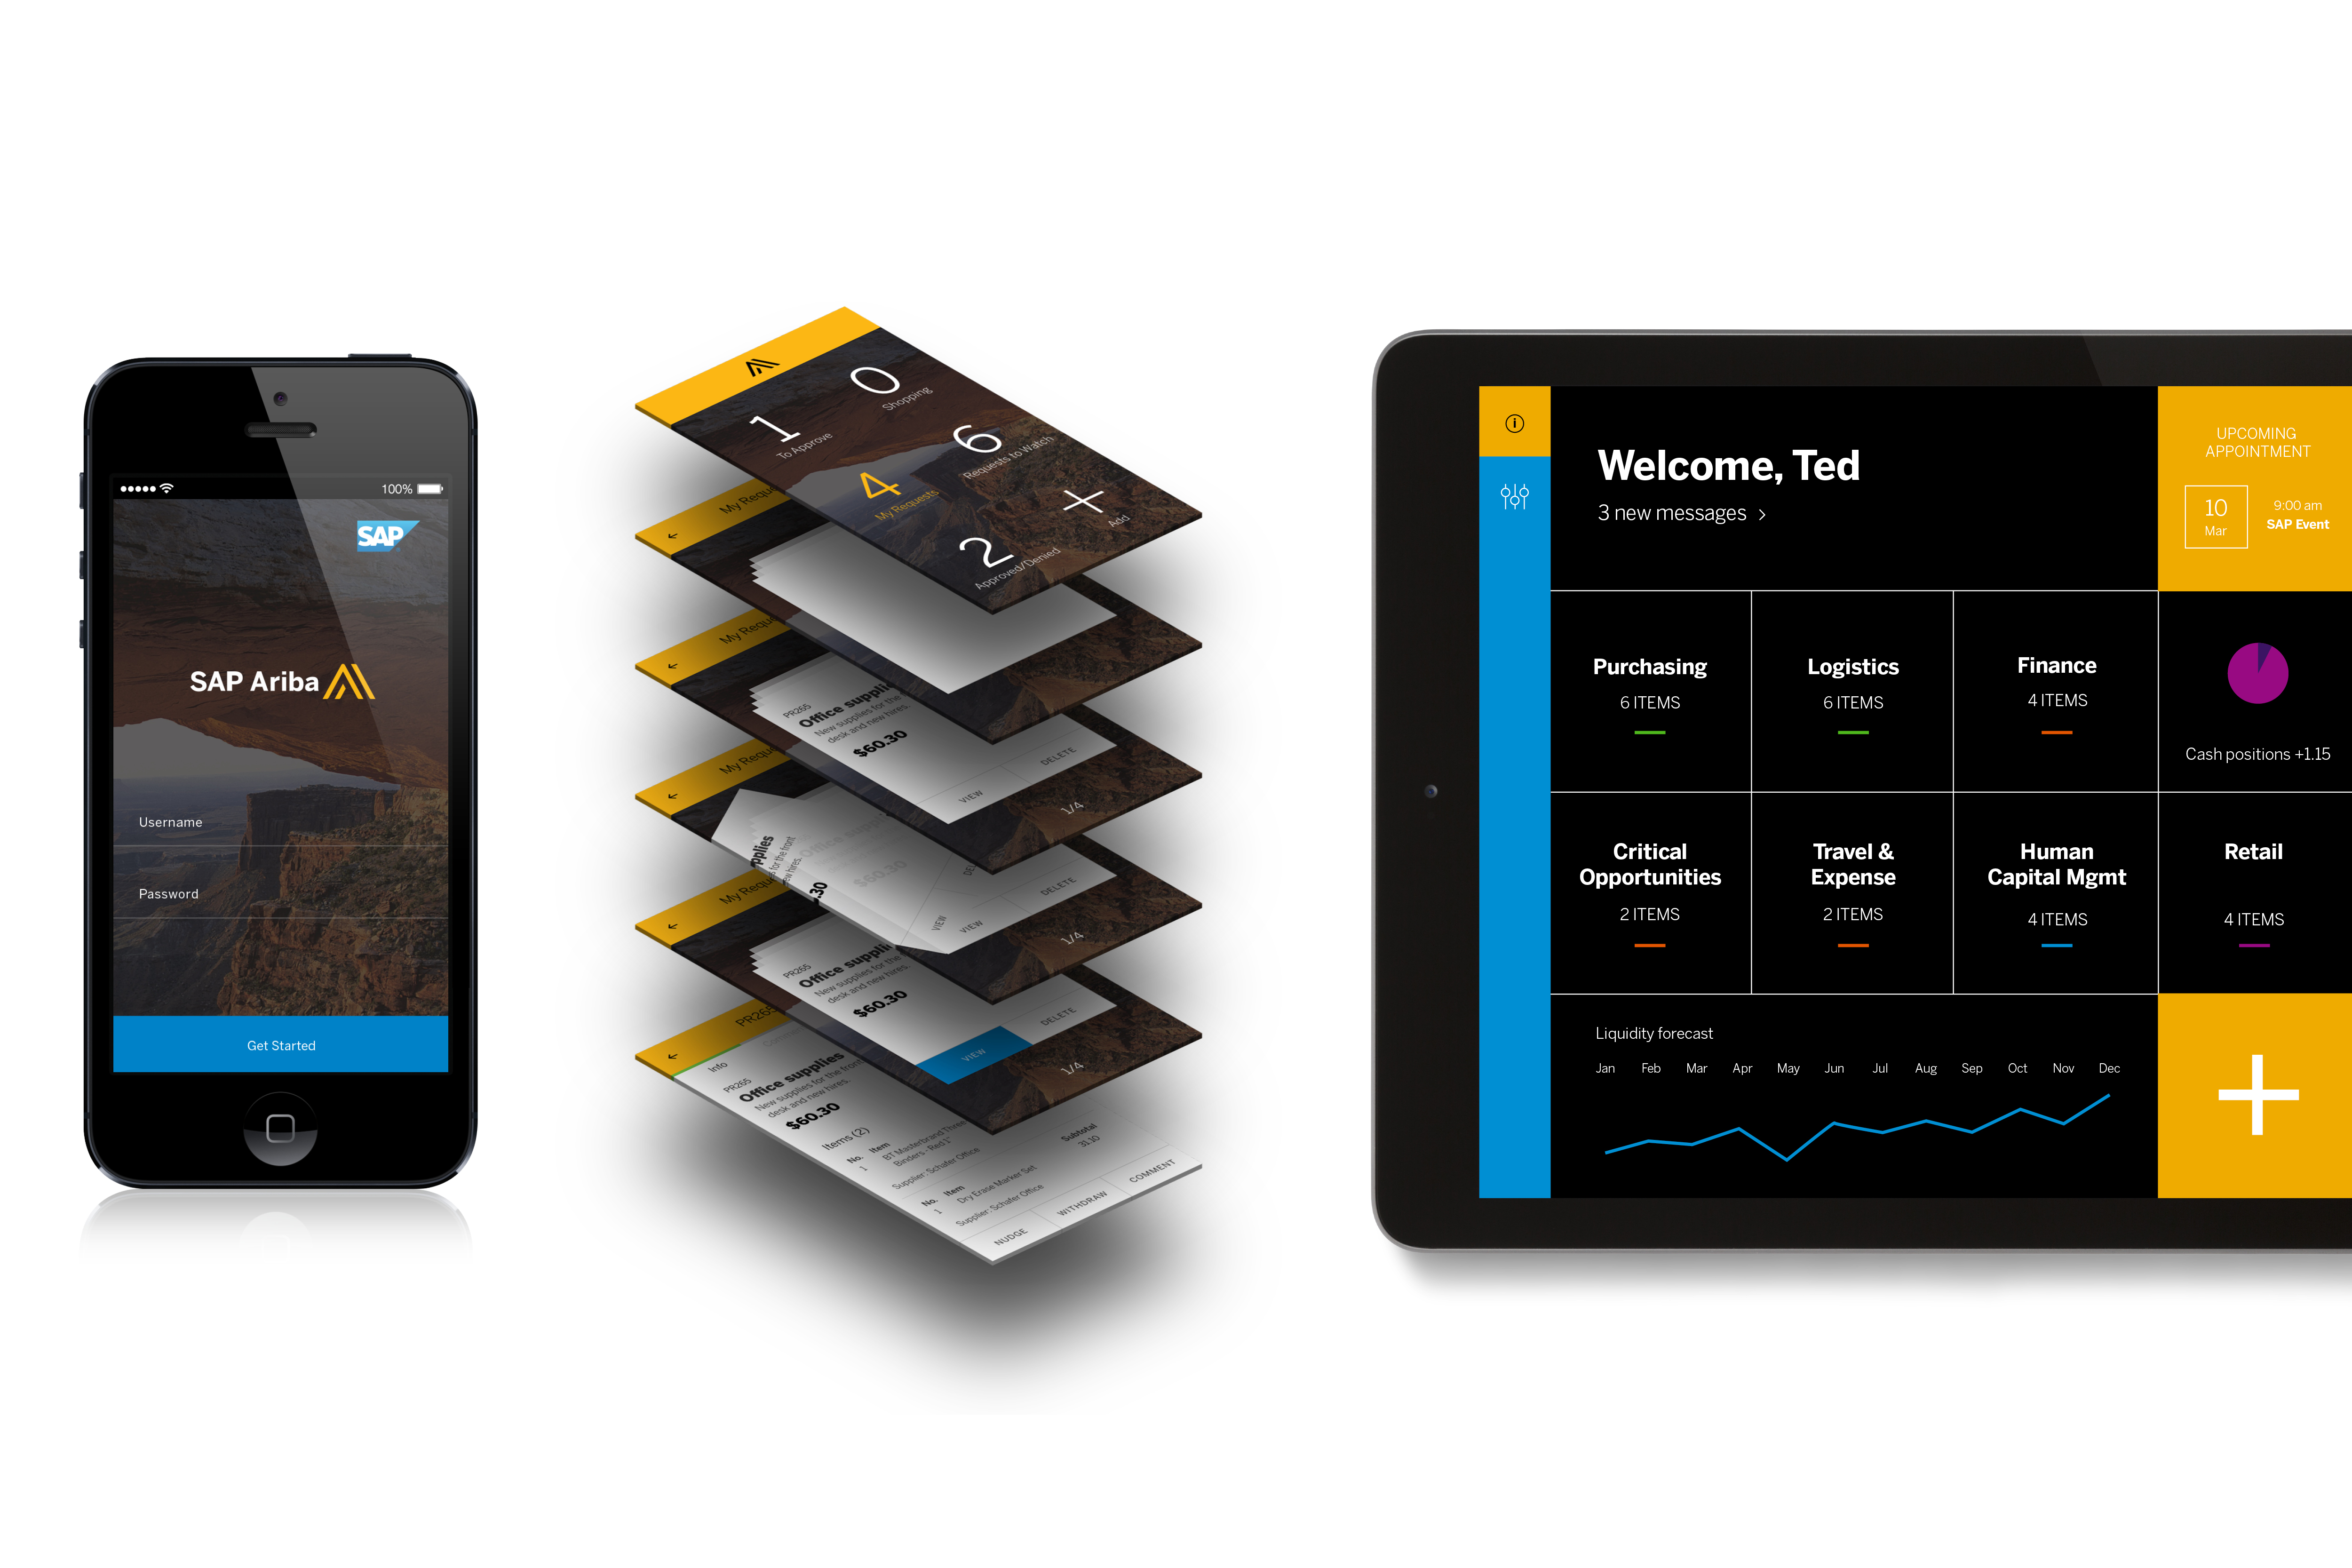 Thumbnail for SAP Identity and iconography redesign